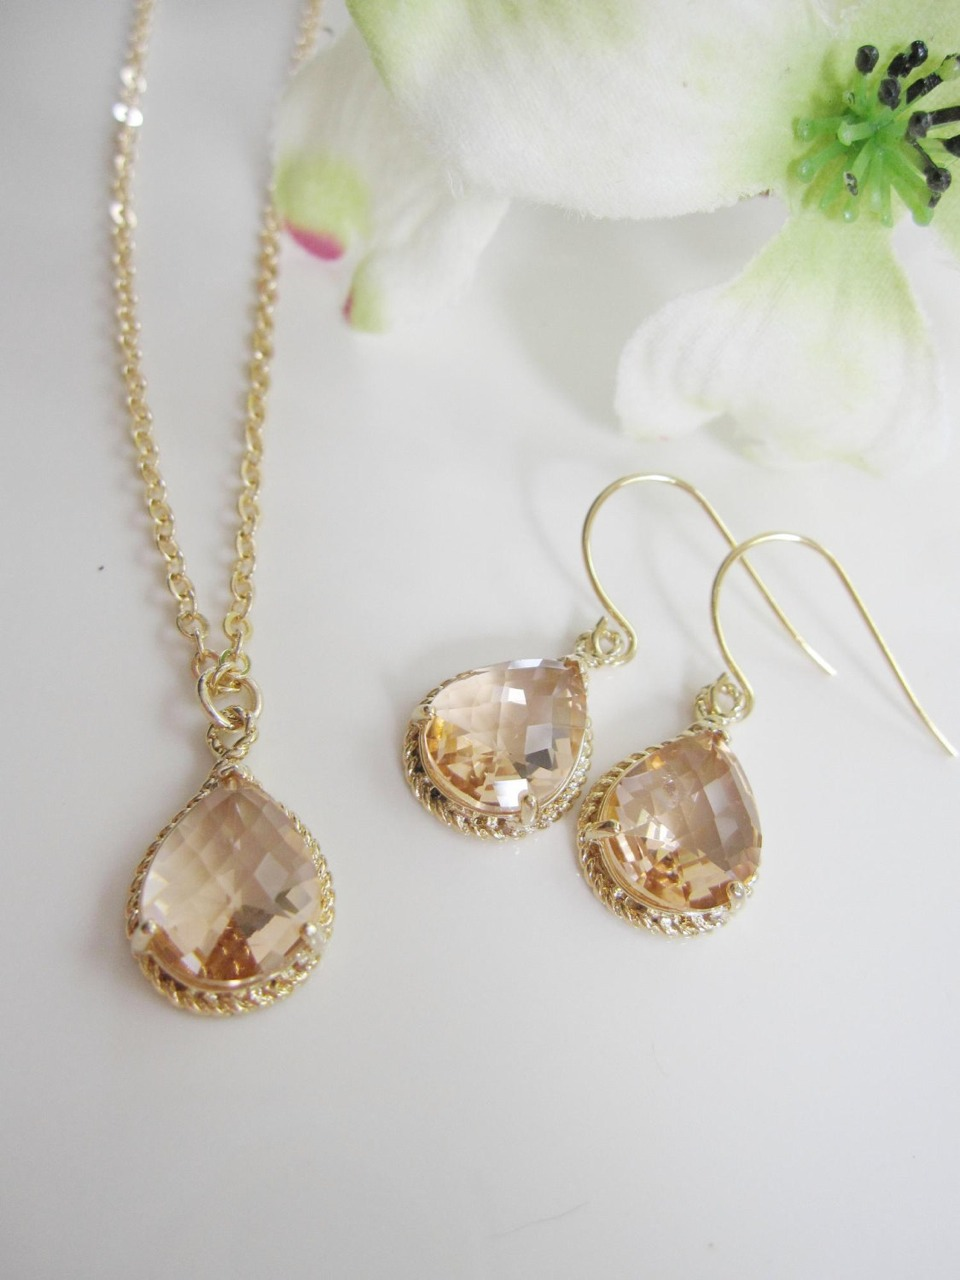 These earrings and necklaces would look great with the dress also it plane so it isn't clashing to much with the neckline and it's the perfect length too